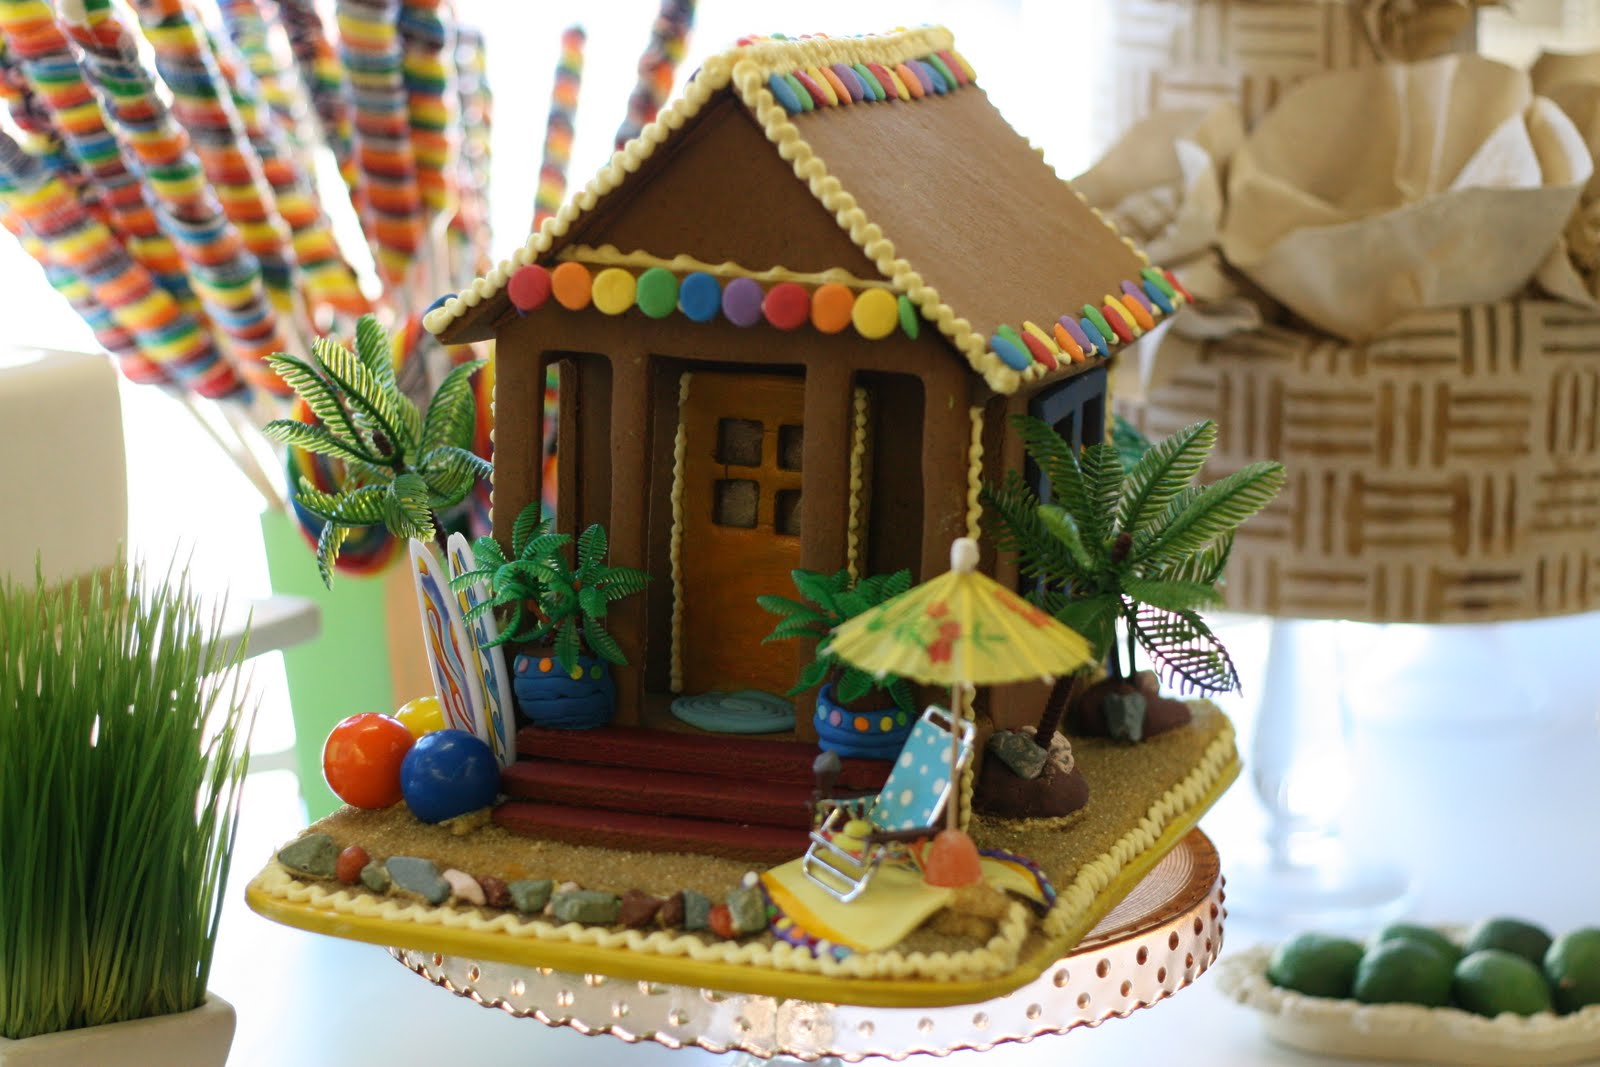 Christmas Decorations For The Beach House : The solvang bakery gingerbread company two